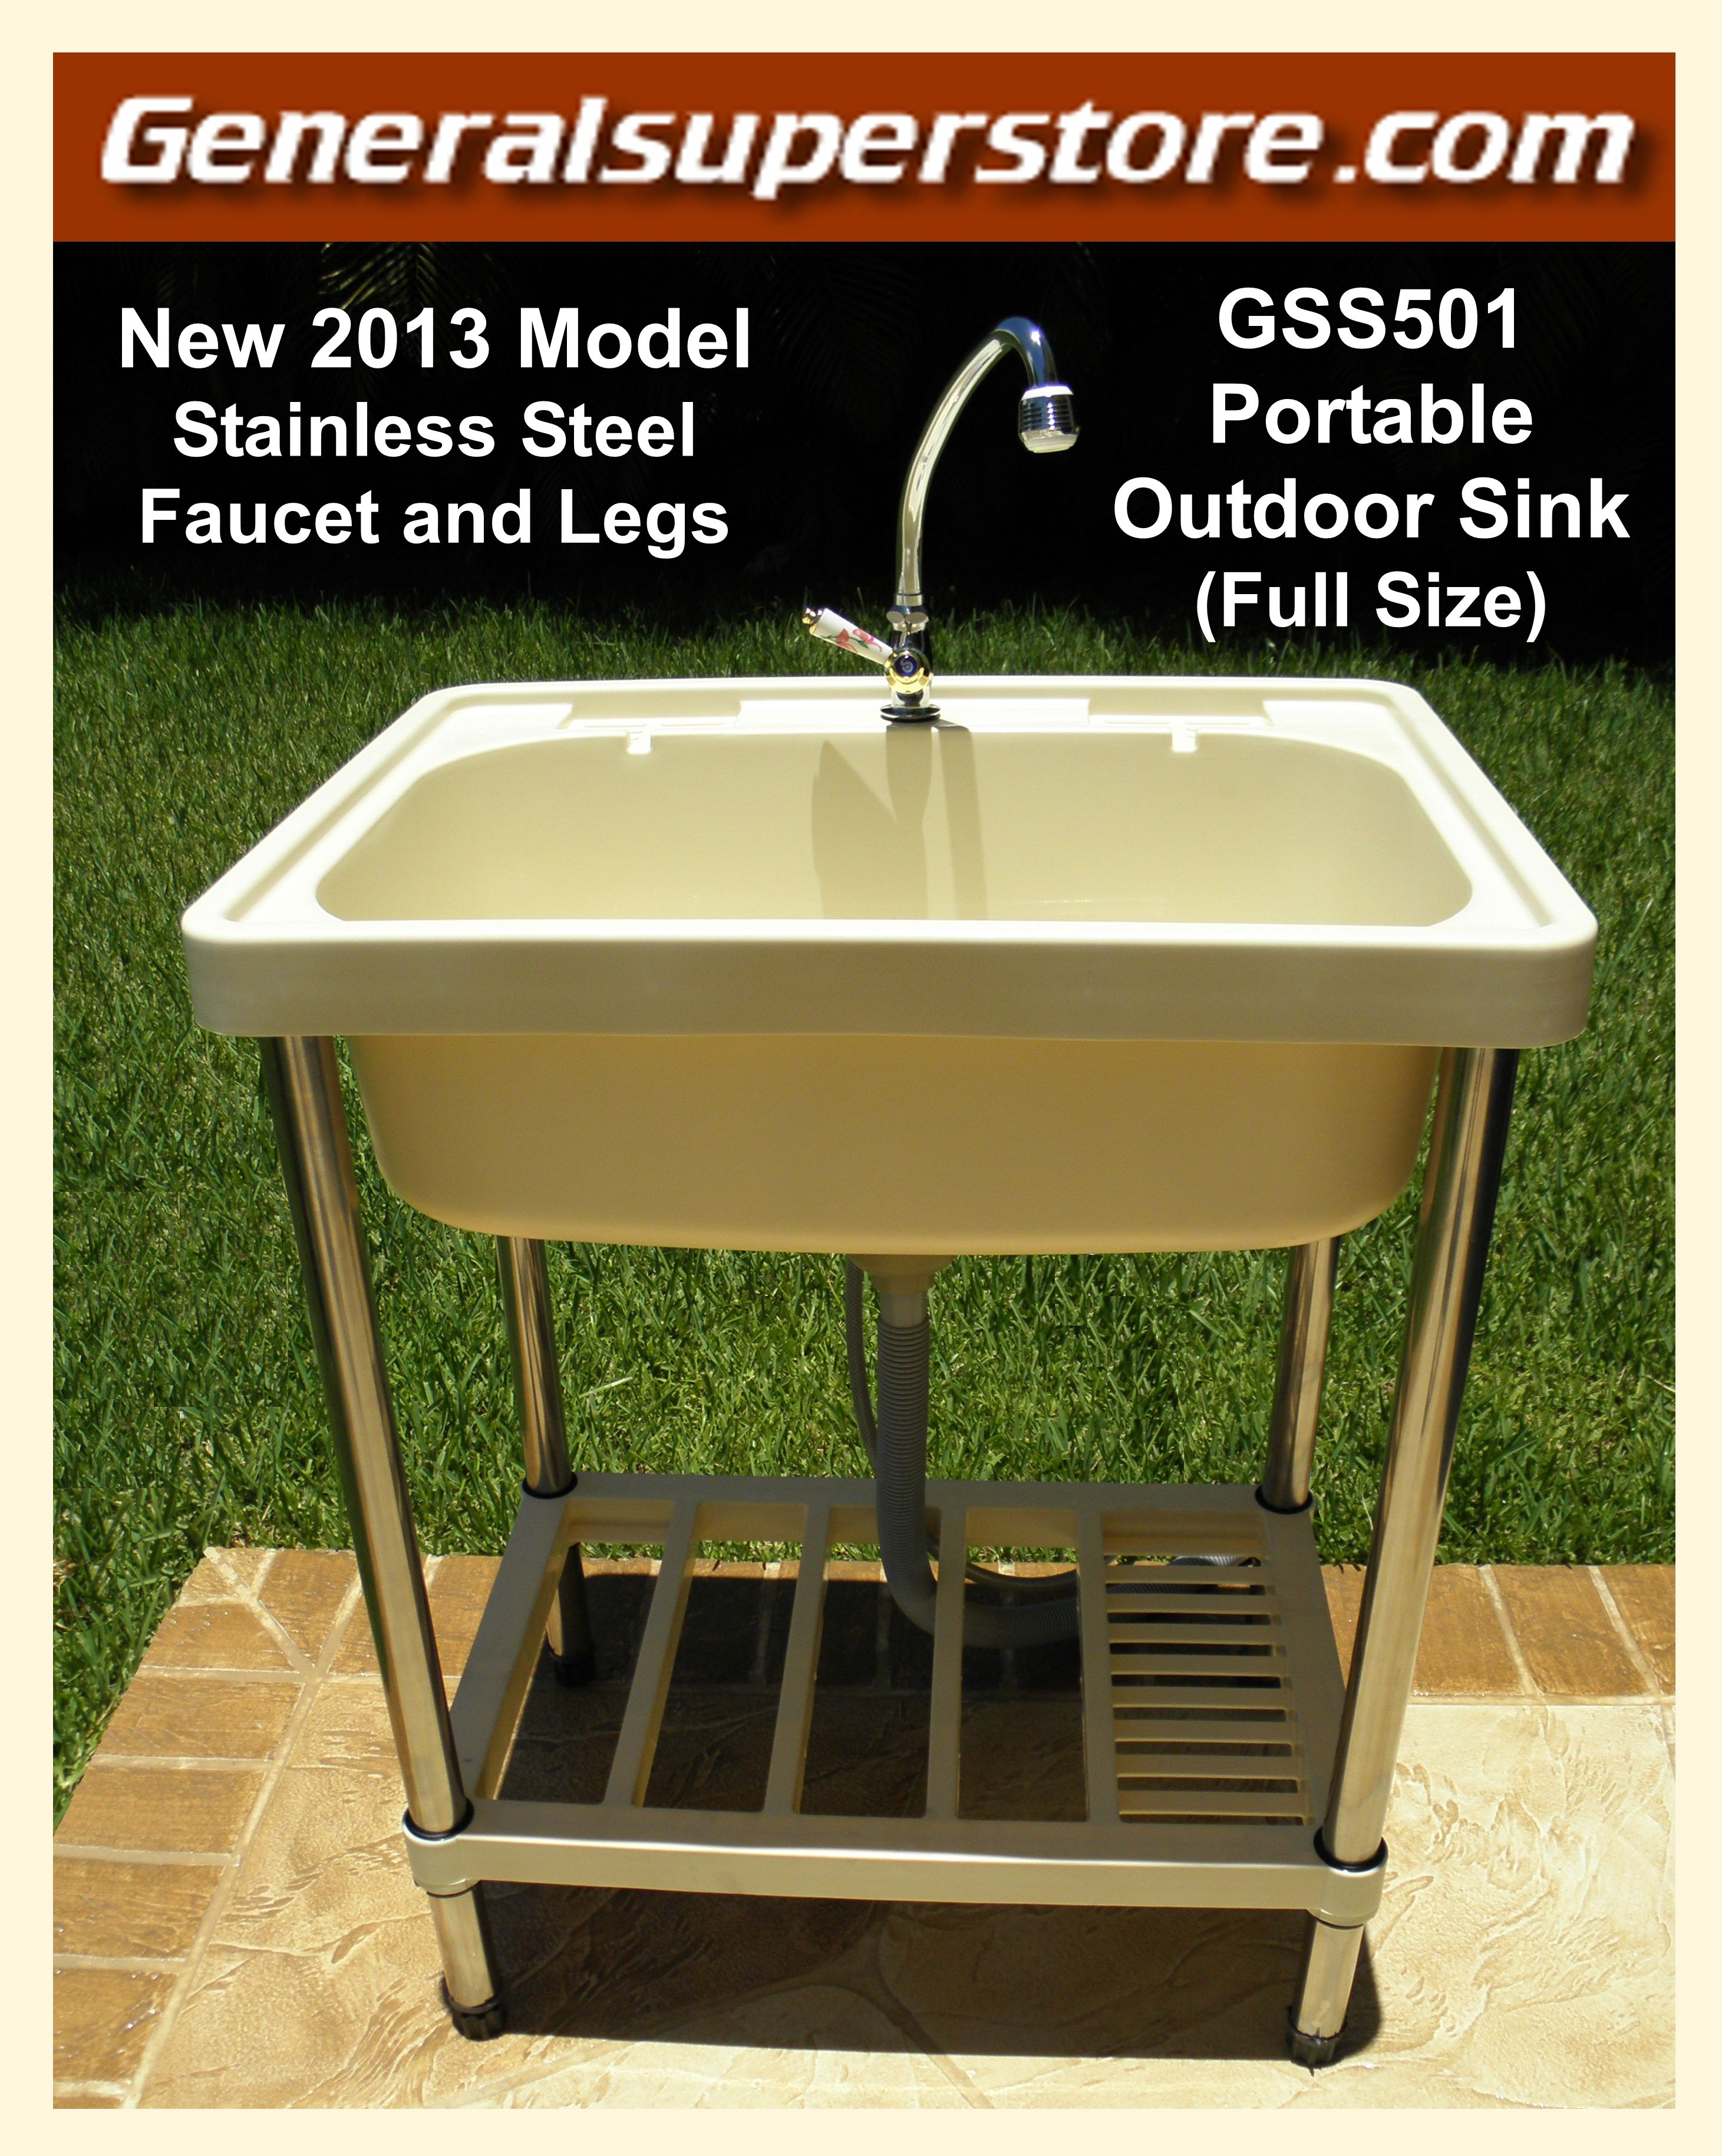 New 2013 Model With Stainless Steel Legs With Images Outdoor Sinks Kitchen Water Faucet Simple Kitchen Remodel